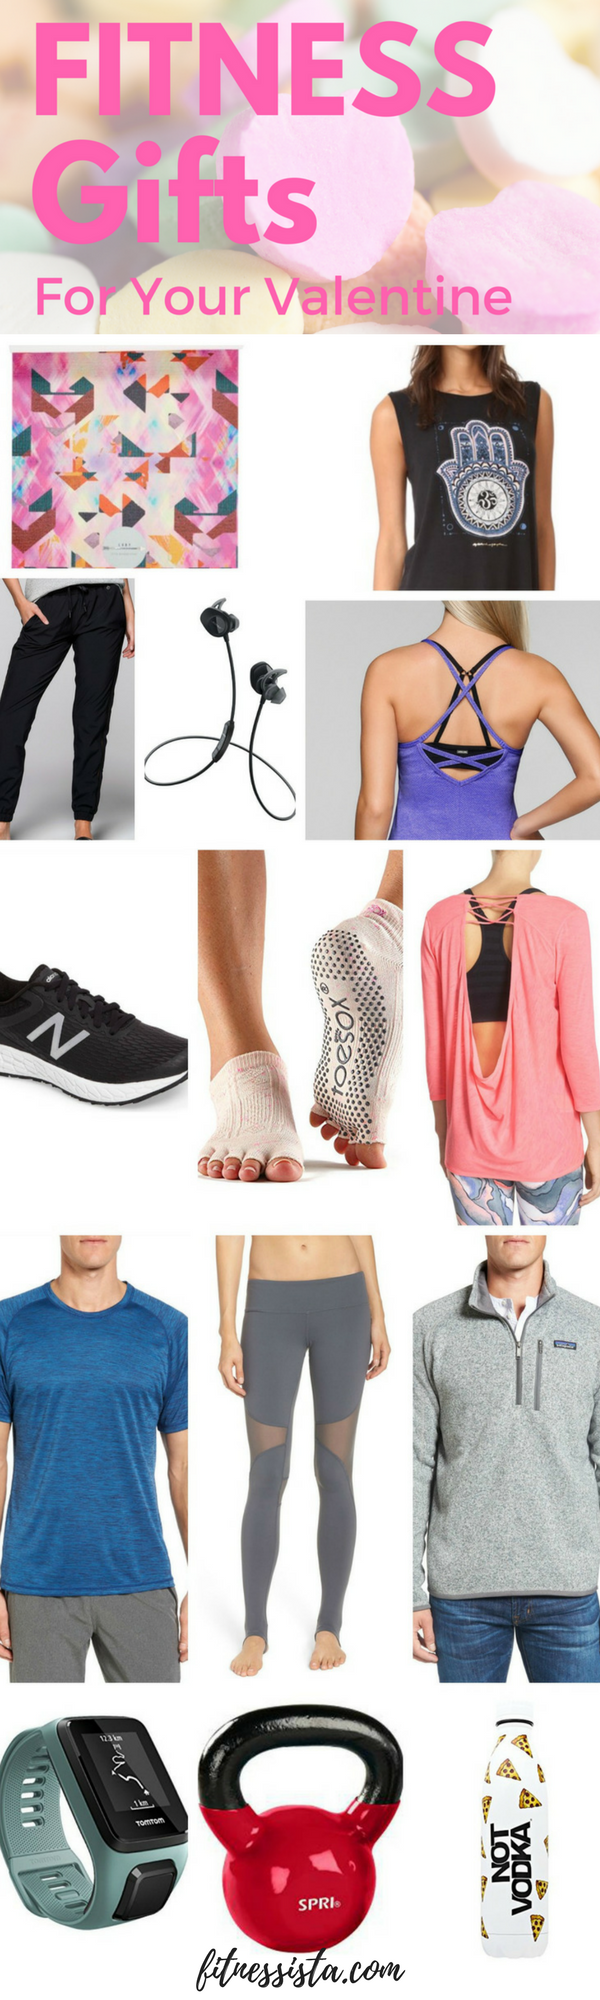 Fitness gifts for your valentine